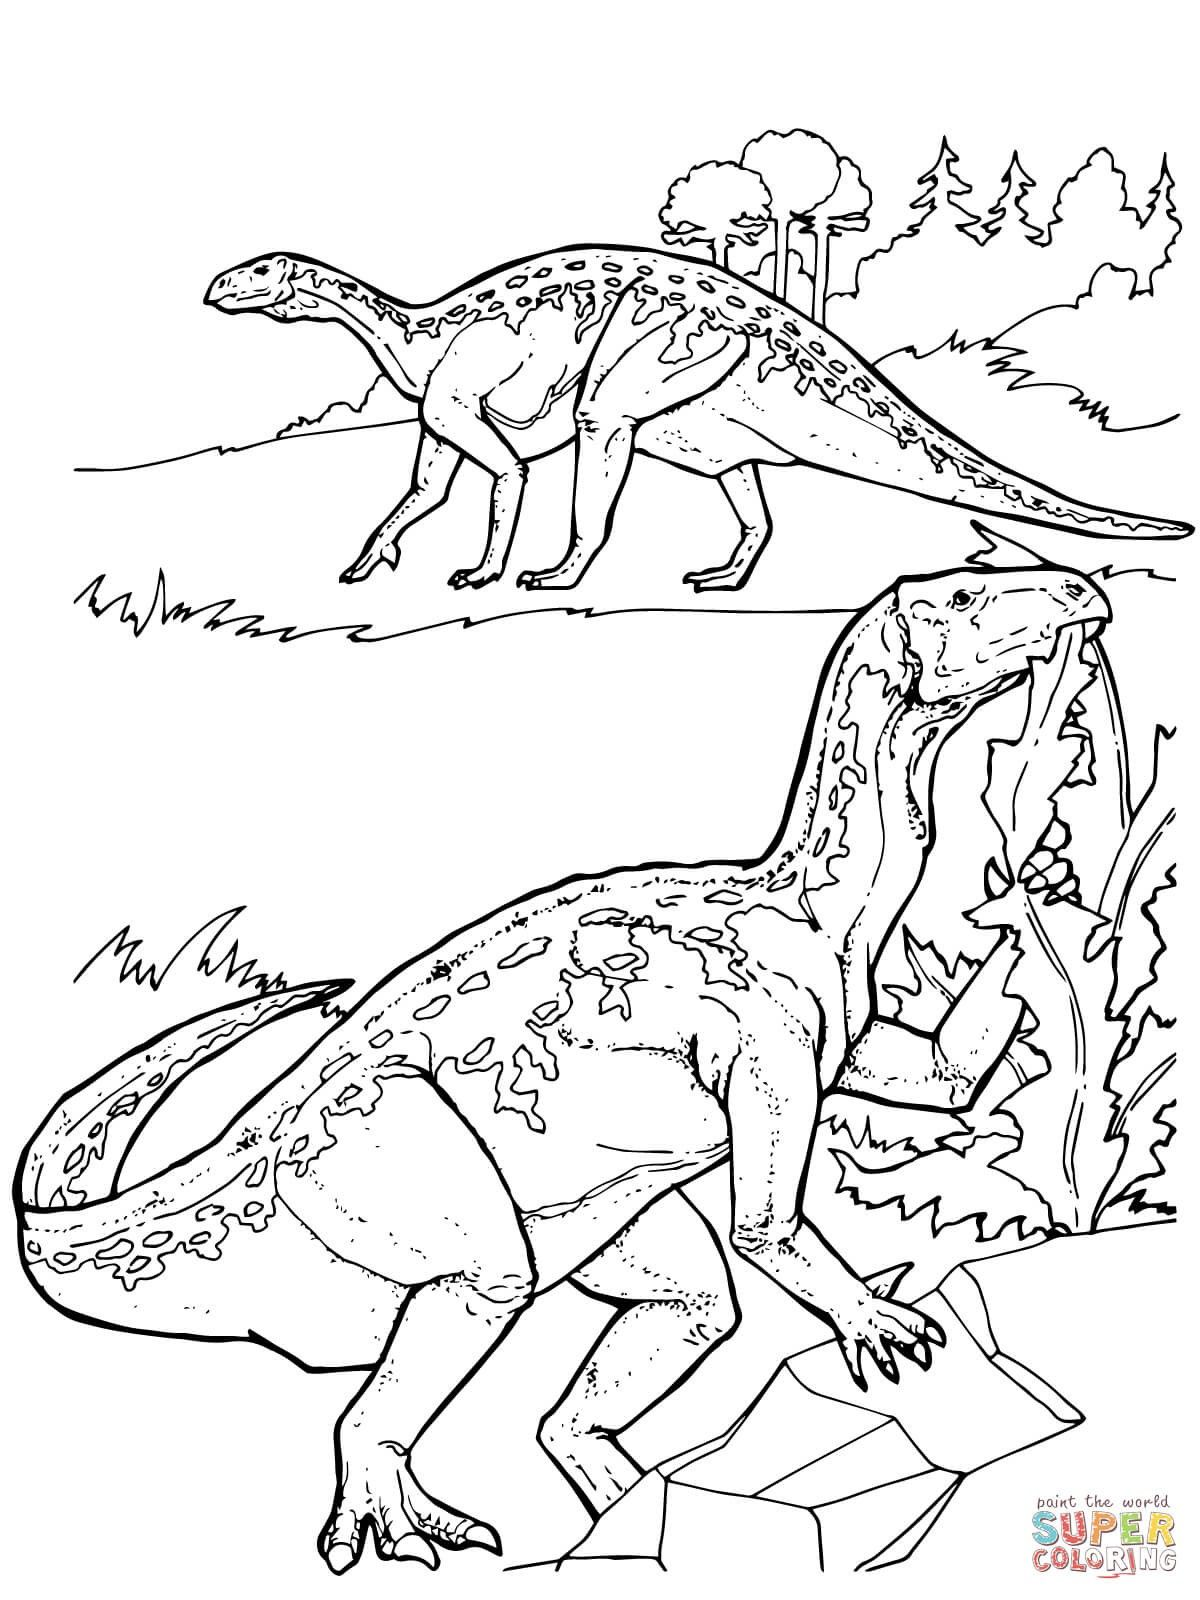 Triassic Dinosaurs Coloring Pages Dinosaur Coloring Pages